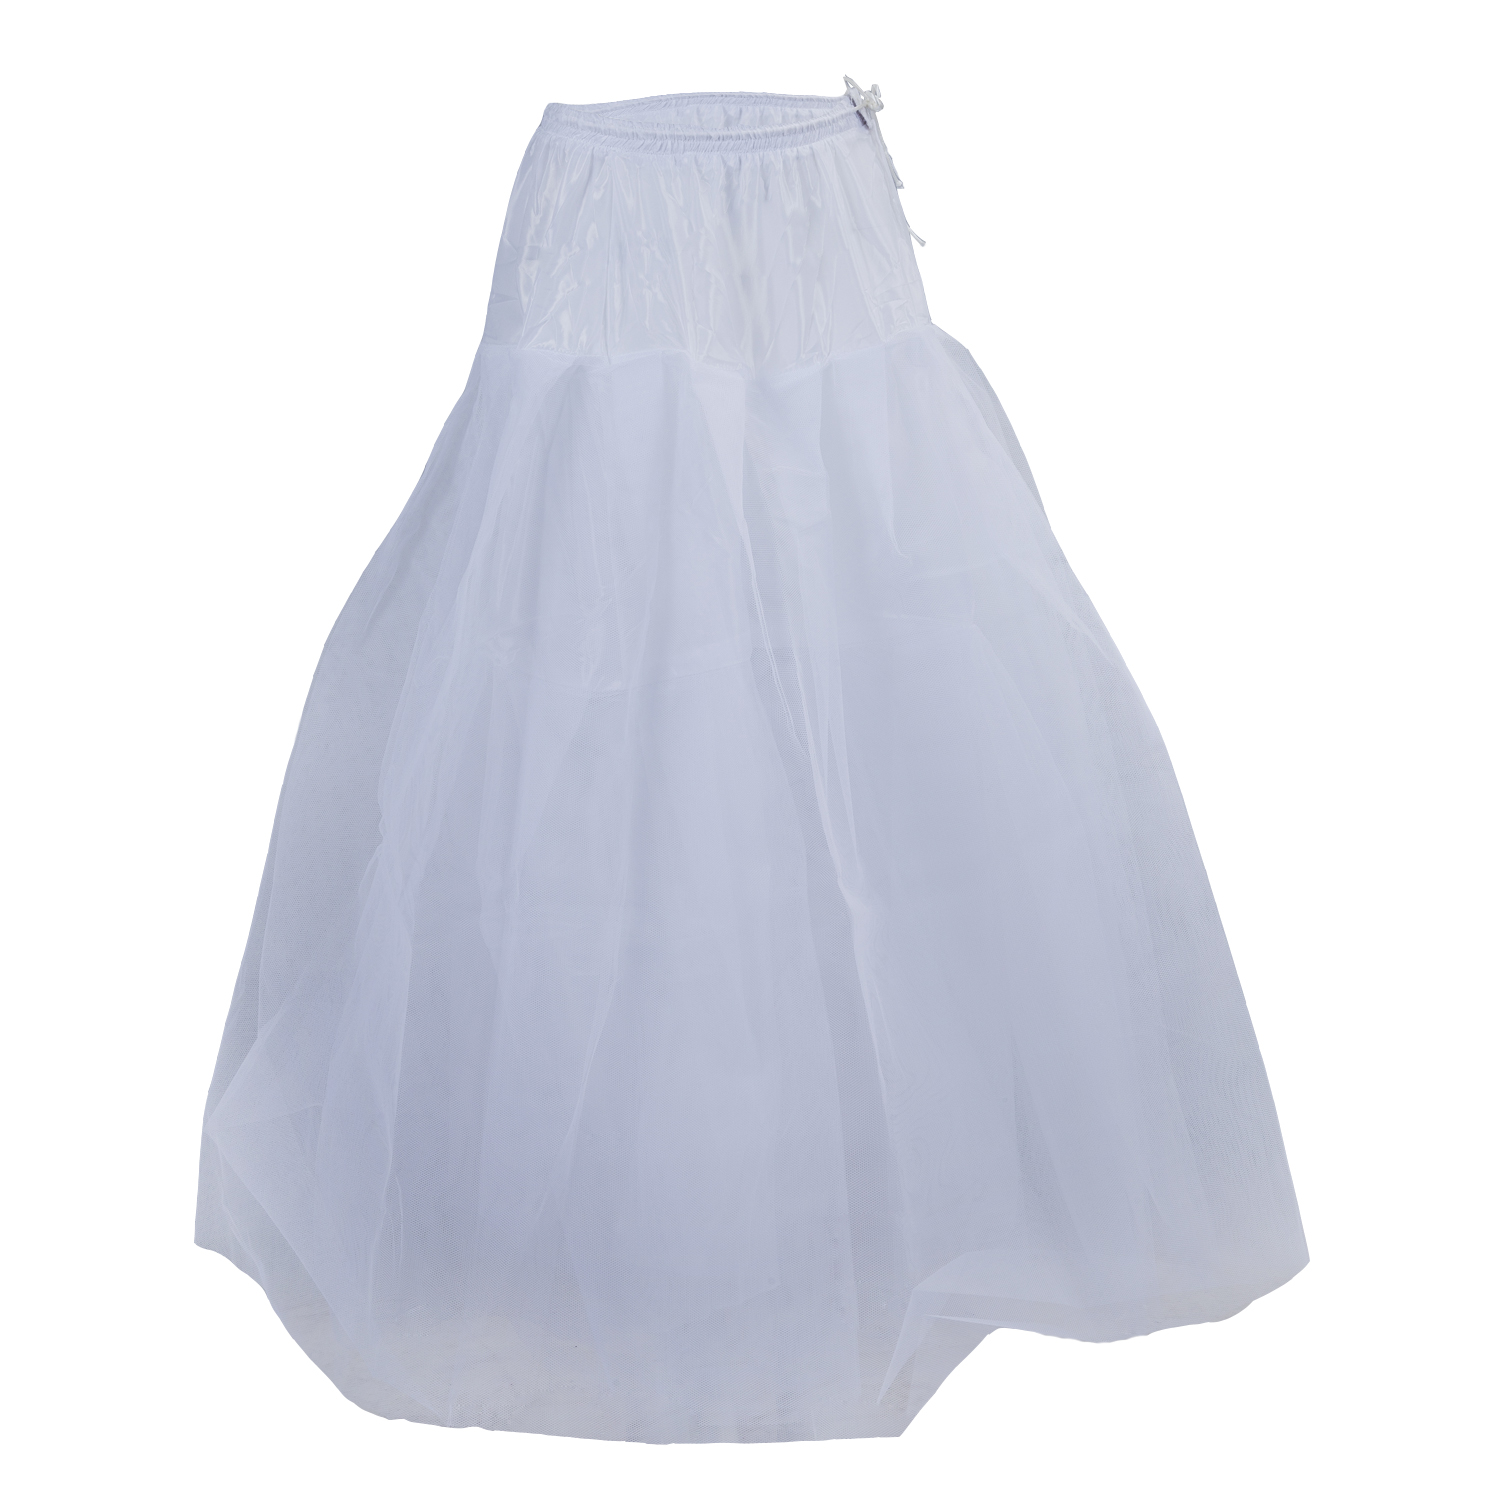 White 4 layer tulle wedding ball gown crinoline petticoat for Tulle petticoat for wedding dress